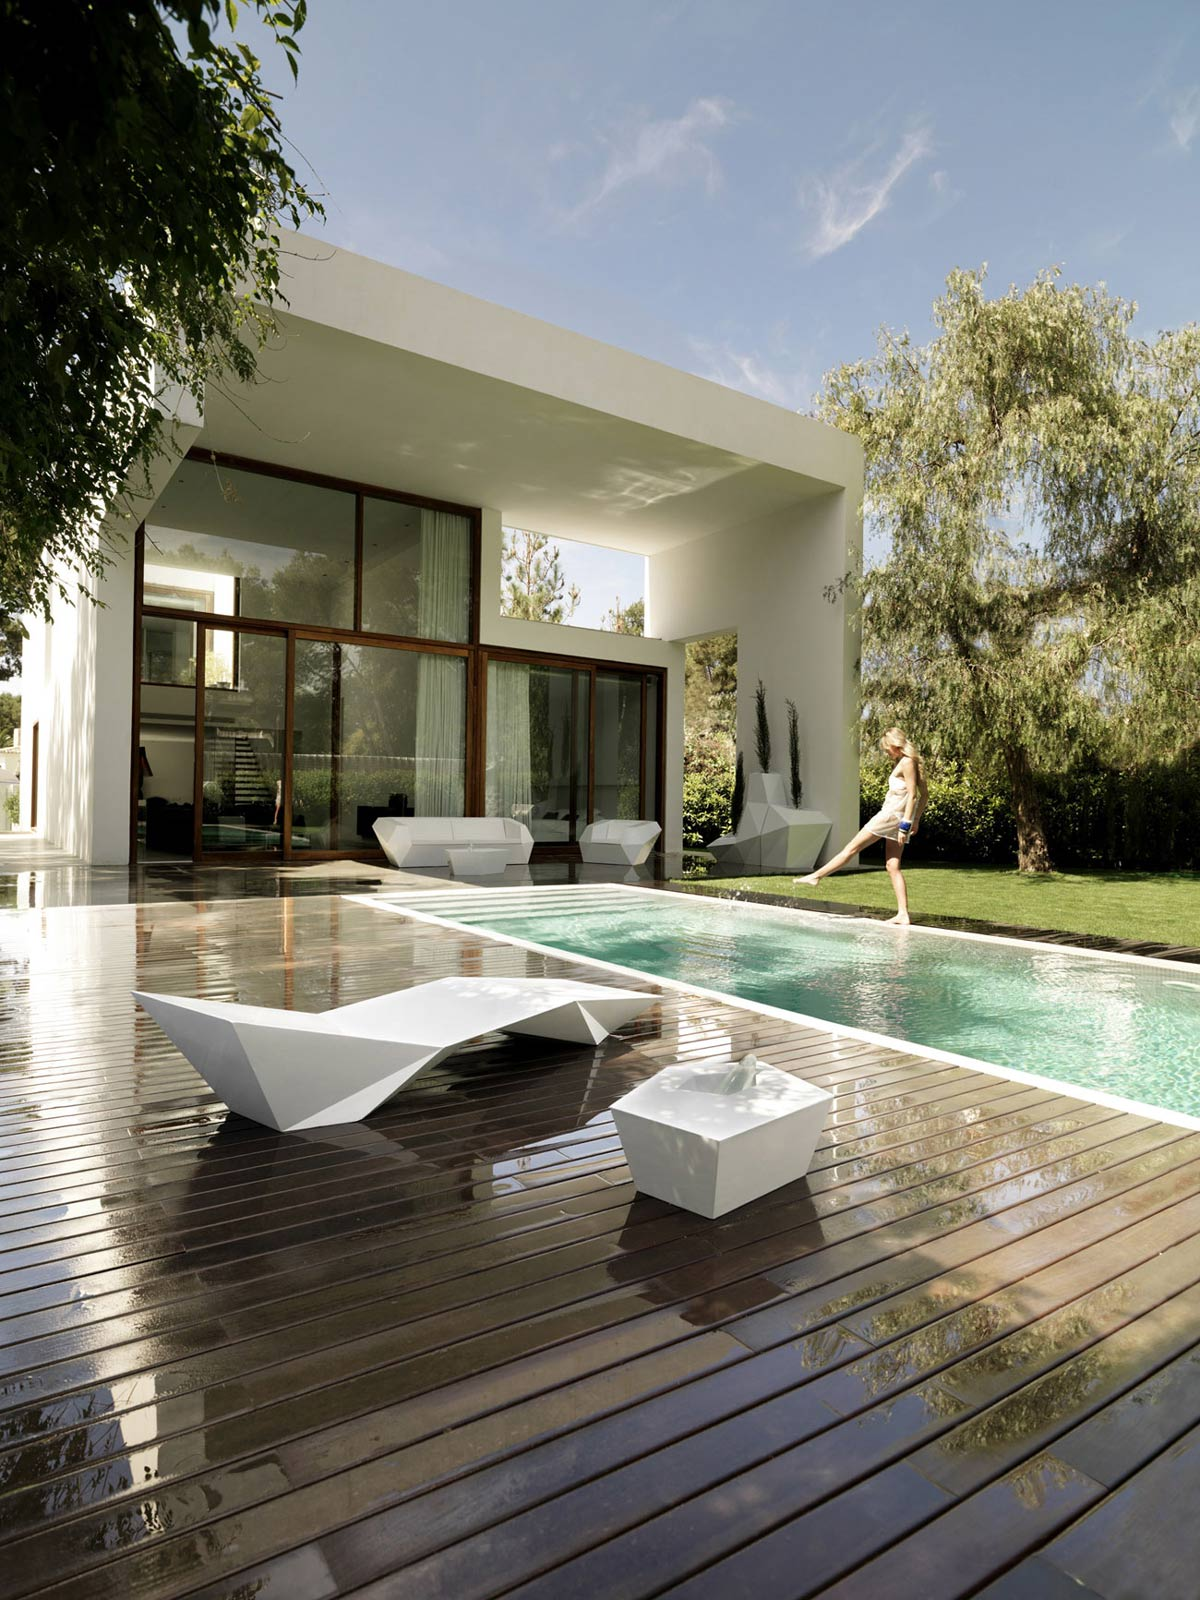 Wooden Terrace, Outdoor Swimming Pool, Contemporary Home in Valencia, Spain